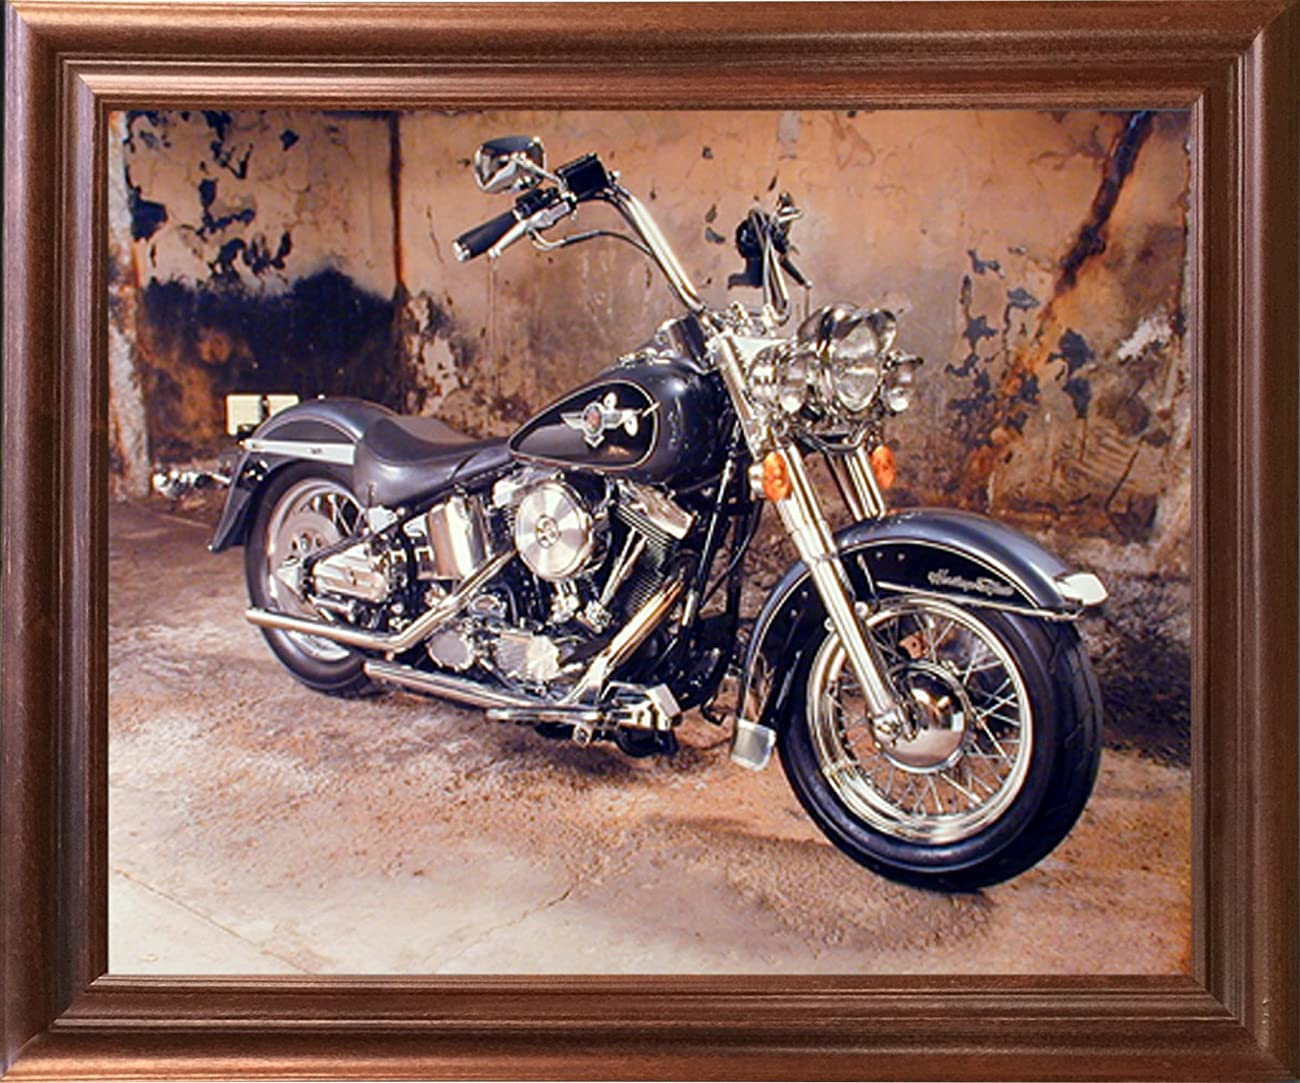 Harley Davidson Black Motorcycle Mahogany Framed Picture Art Print (18x22) 0